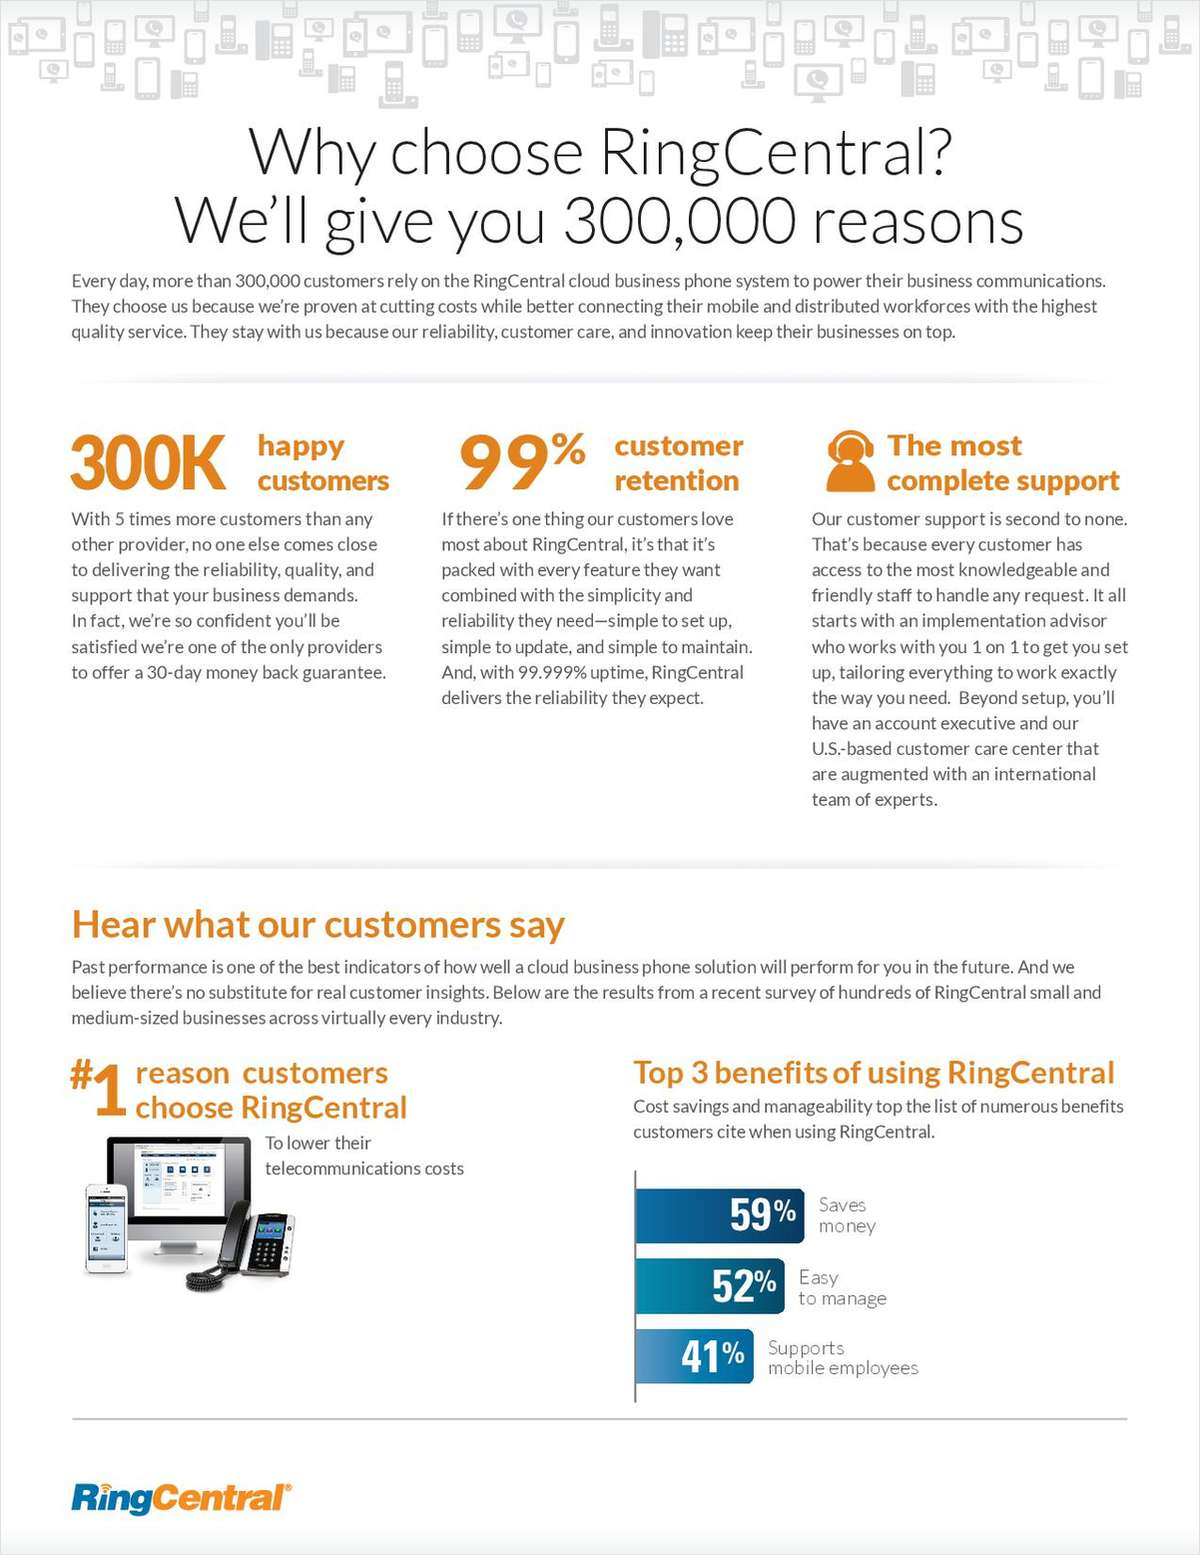 Why Choose RingCentral? We'll Give You 300,000 Reasons!